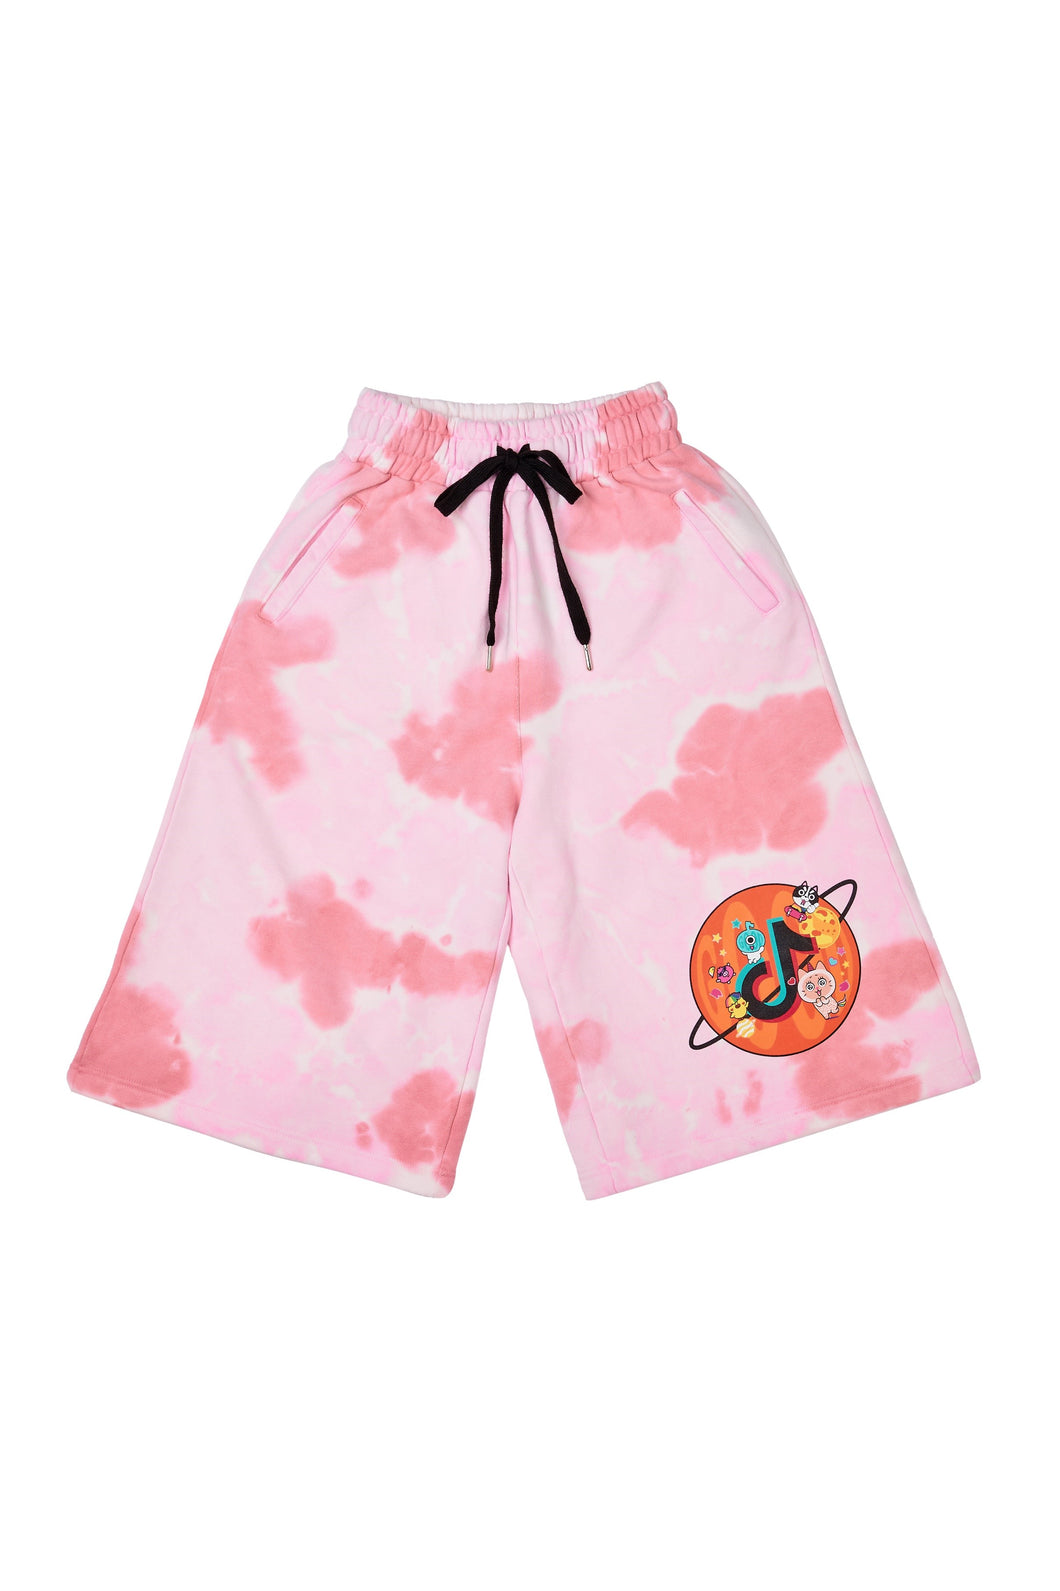 PINK GOOD PLANET SWEATSHORTS